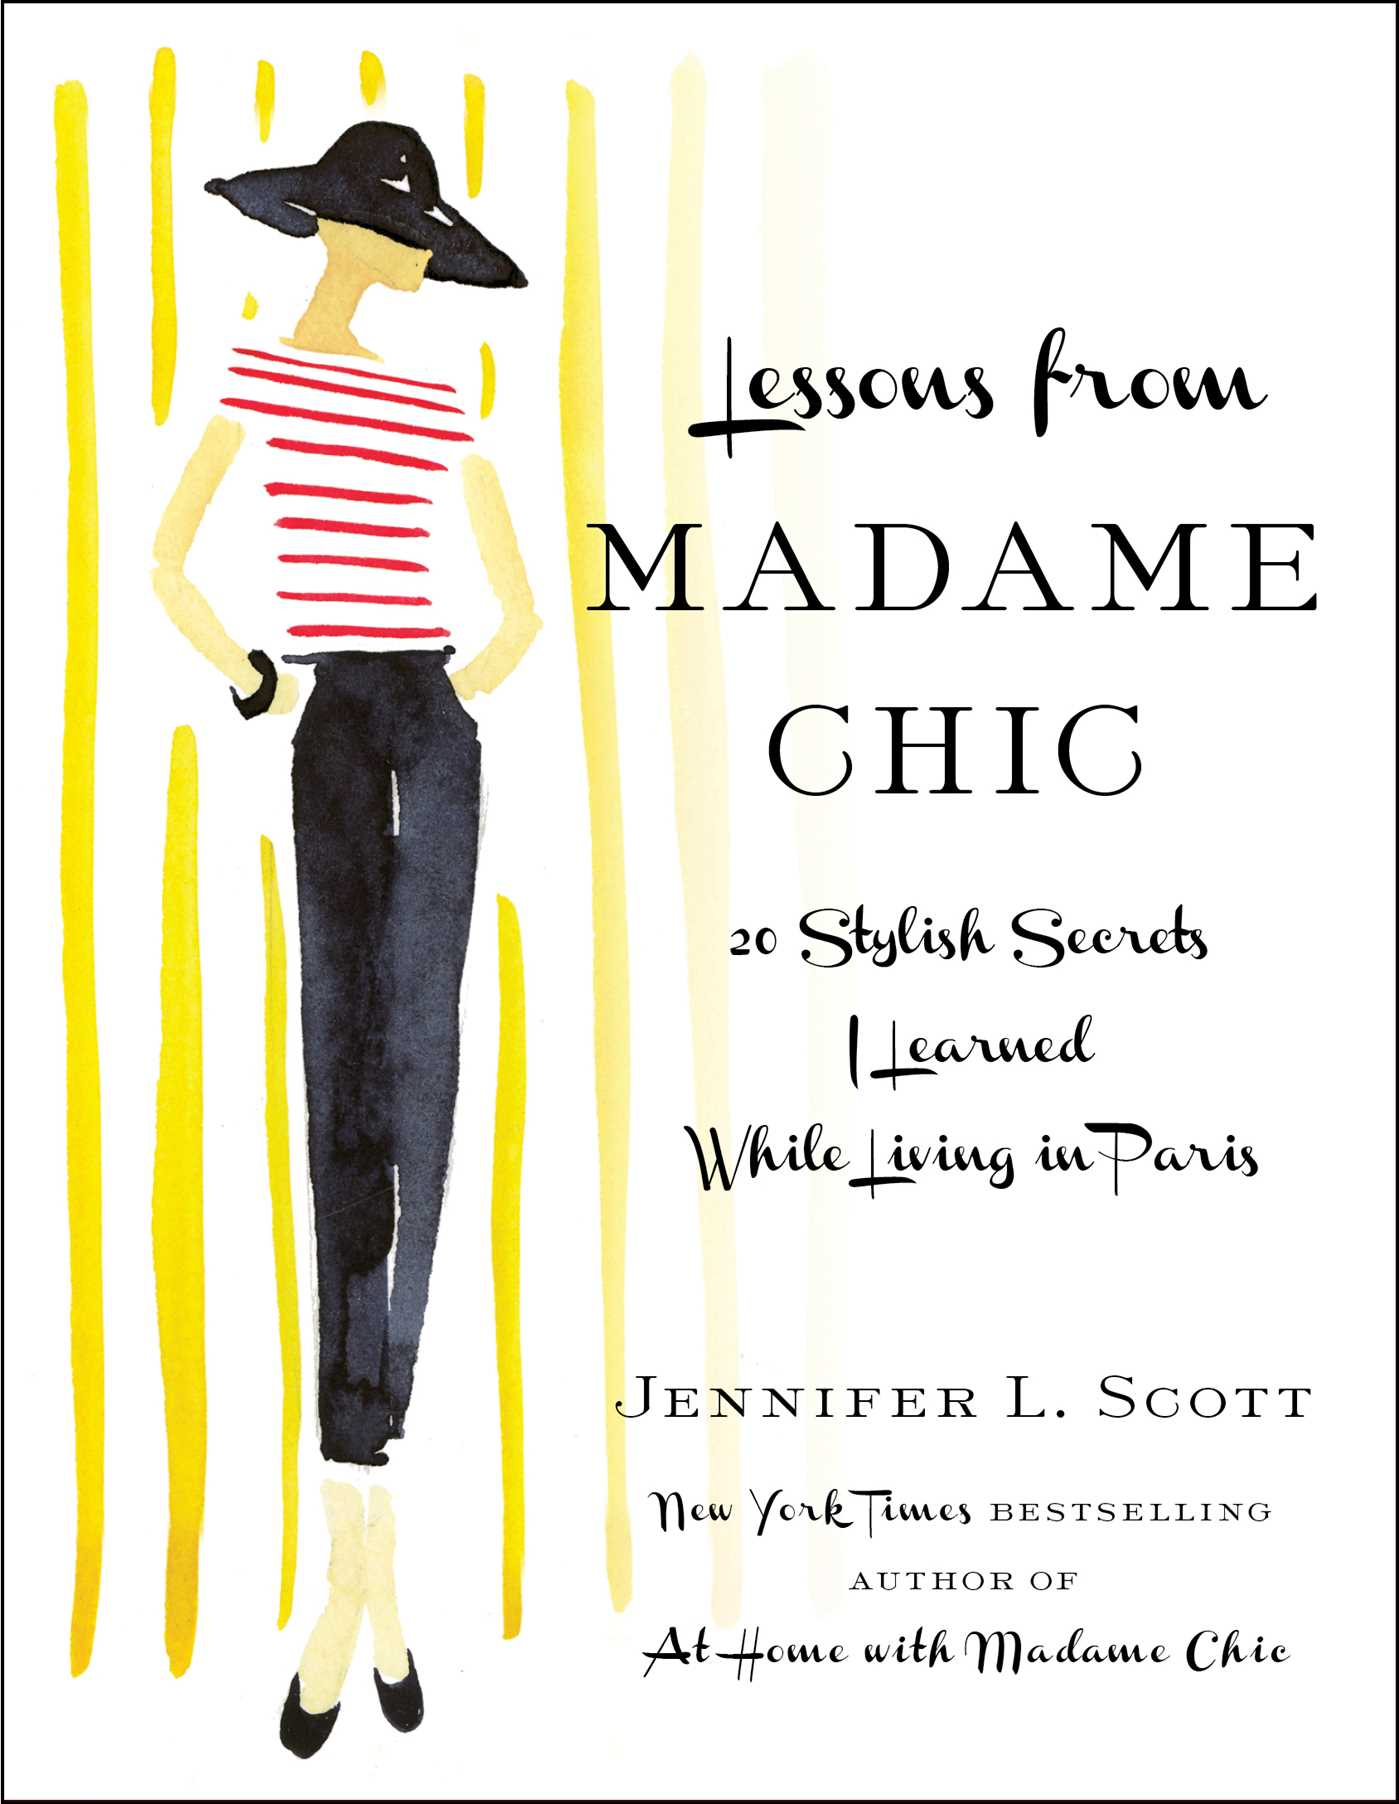 Lessons from Madame Chic 20 Stylish Secrets I Learned While Living in Paris